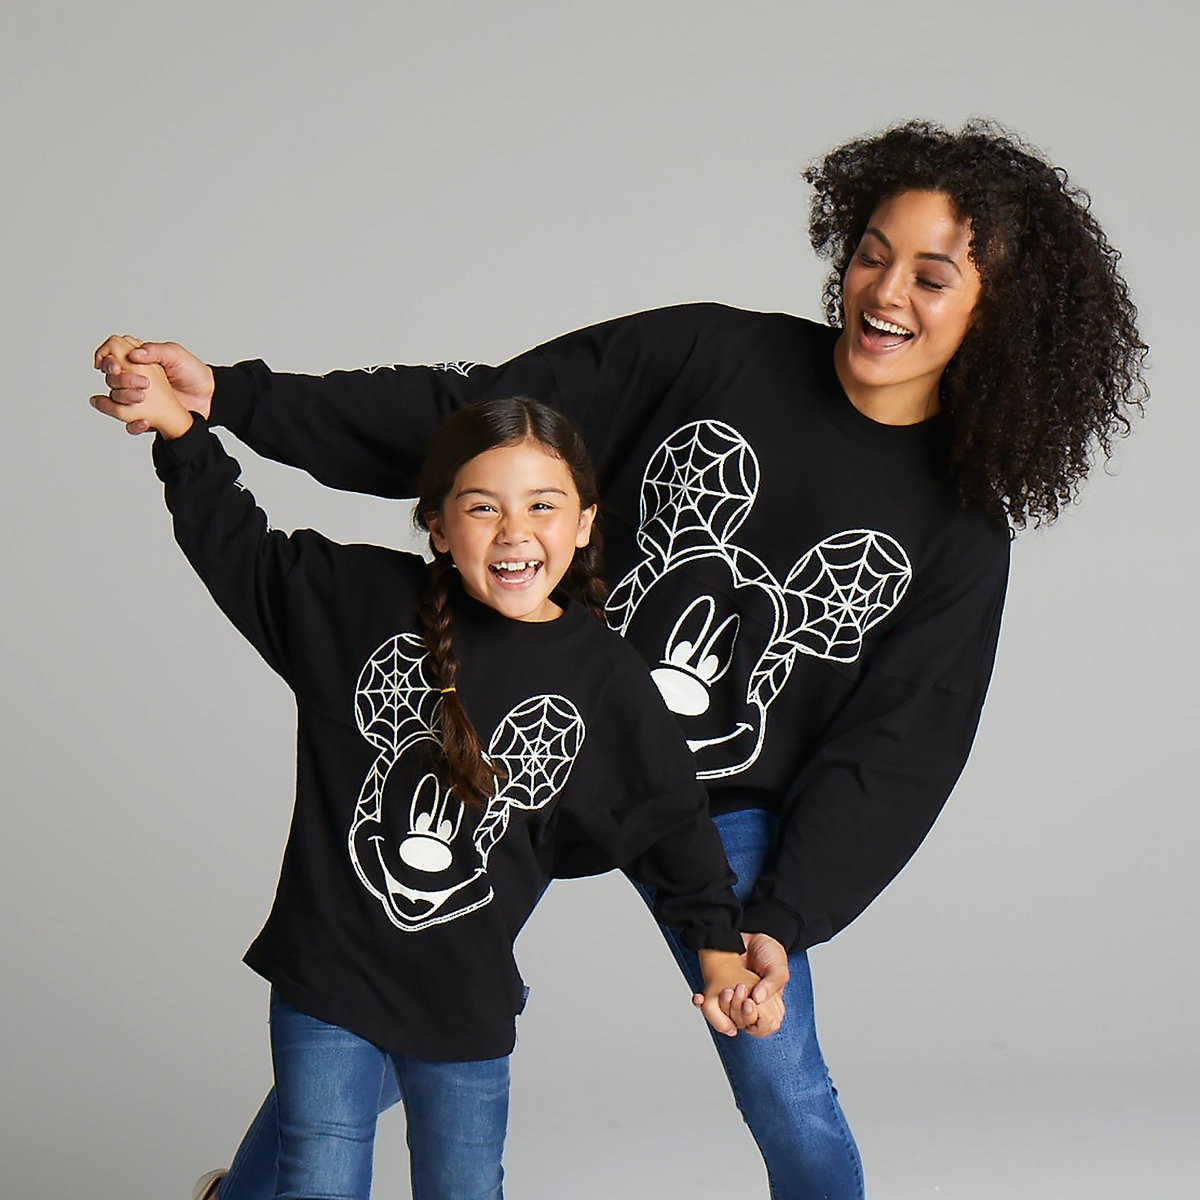 bdca8682 Product Image of Mickey Mouse Halloween Spirit Jersey for Adults # 6